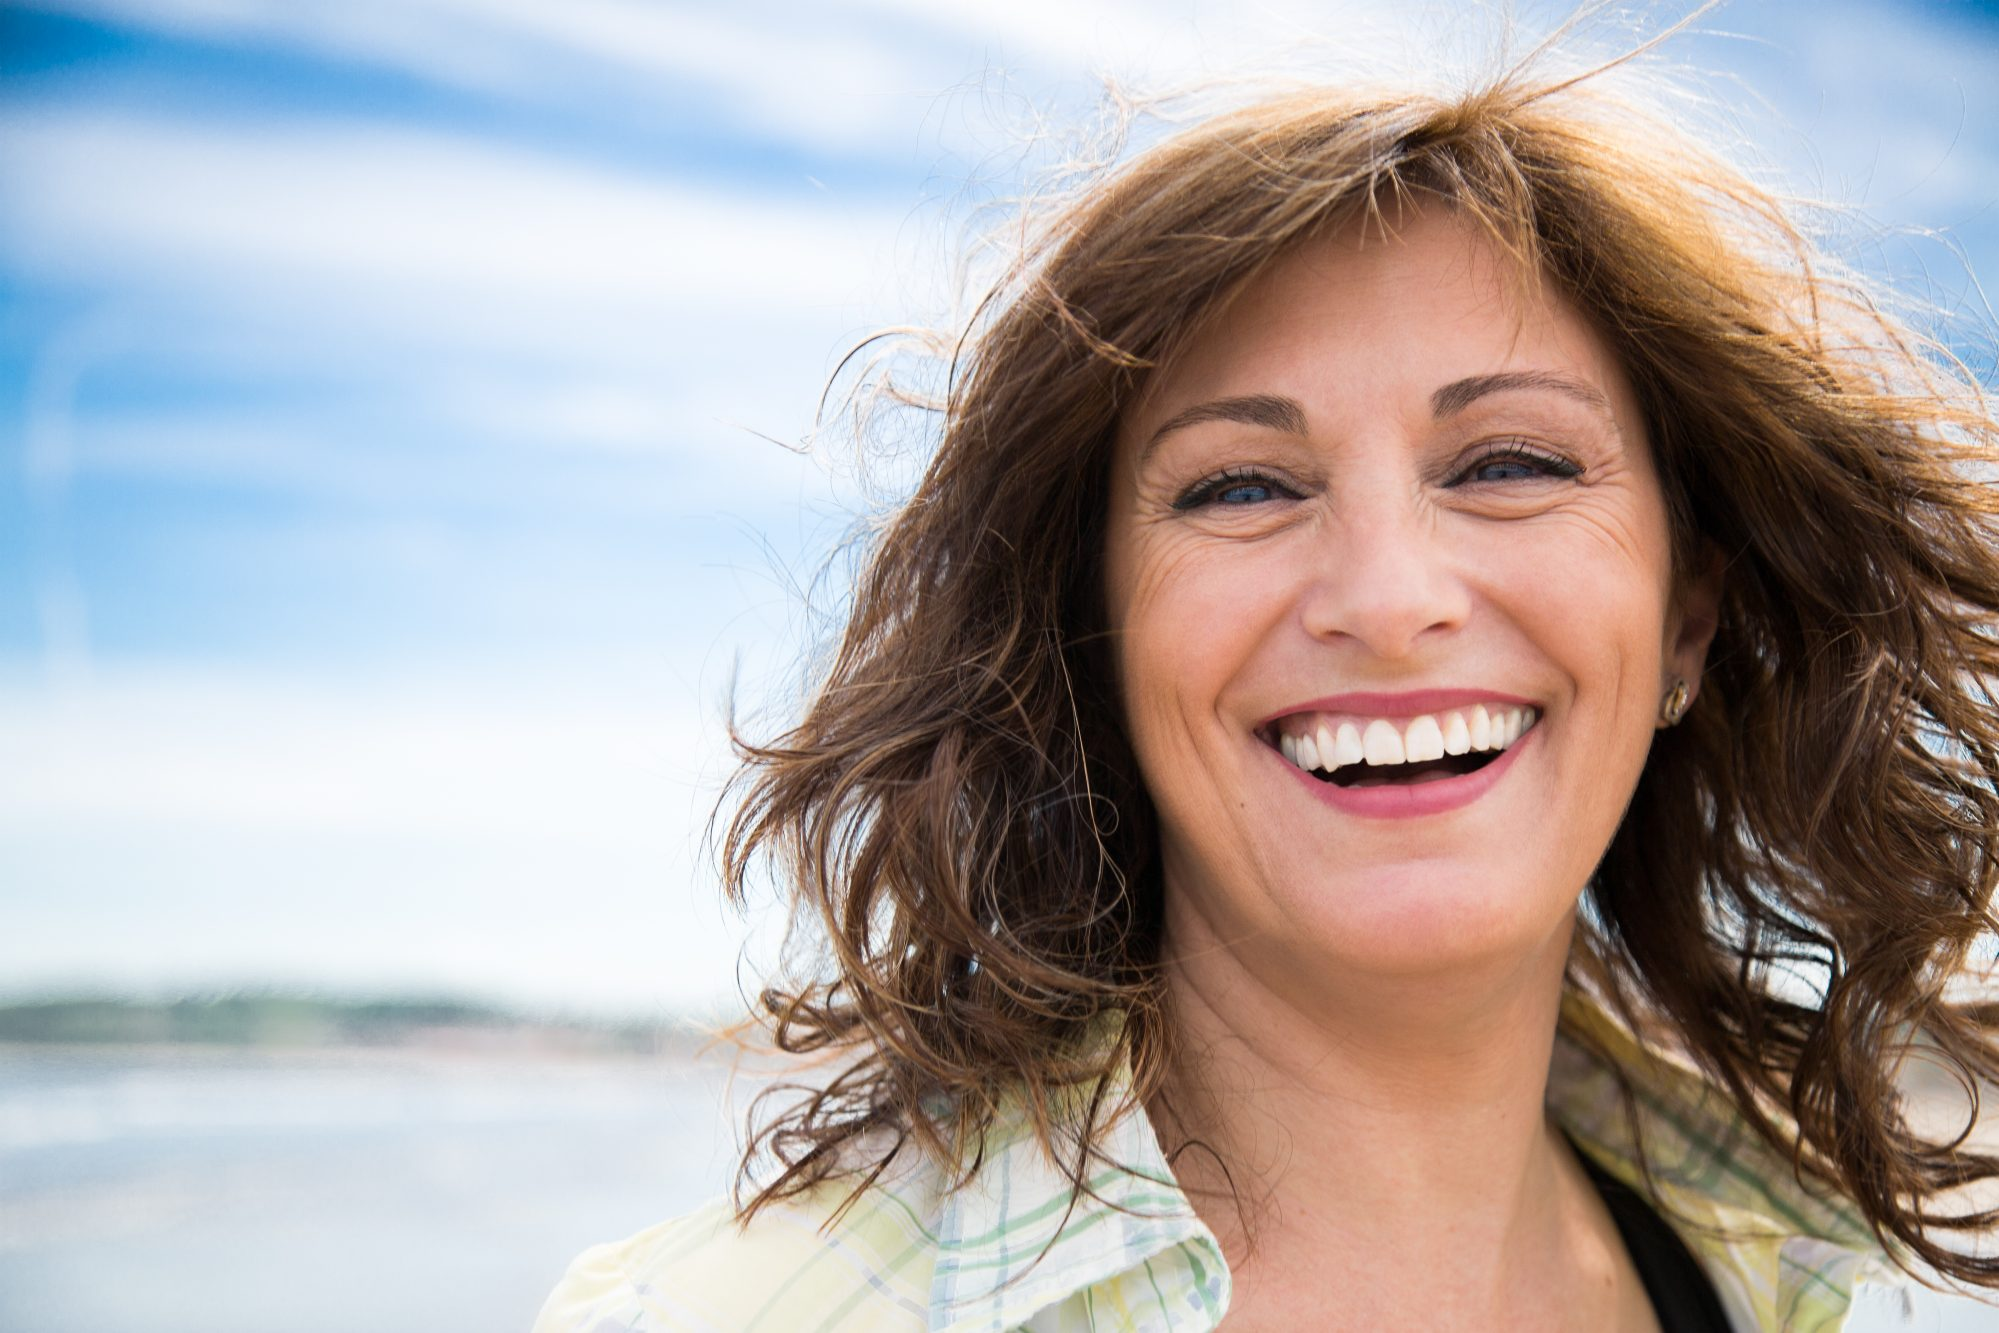 Happy woman with bladder leakage laughing on the beach